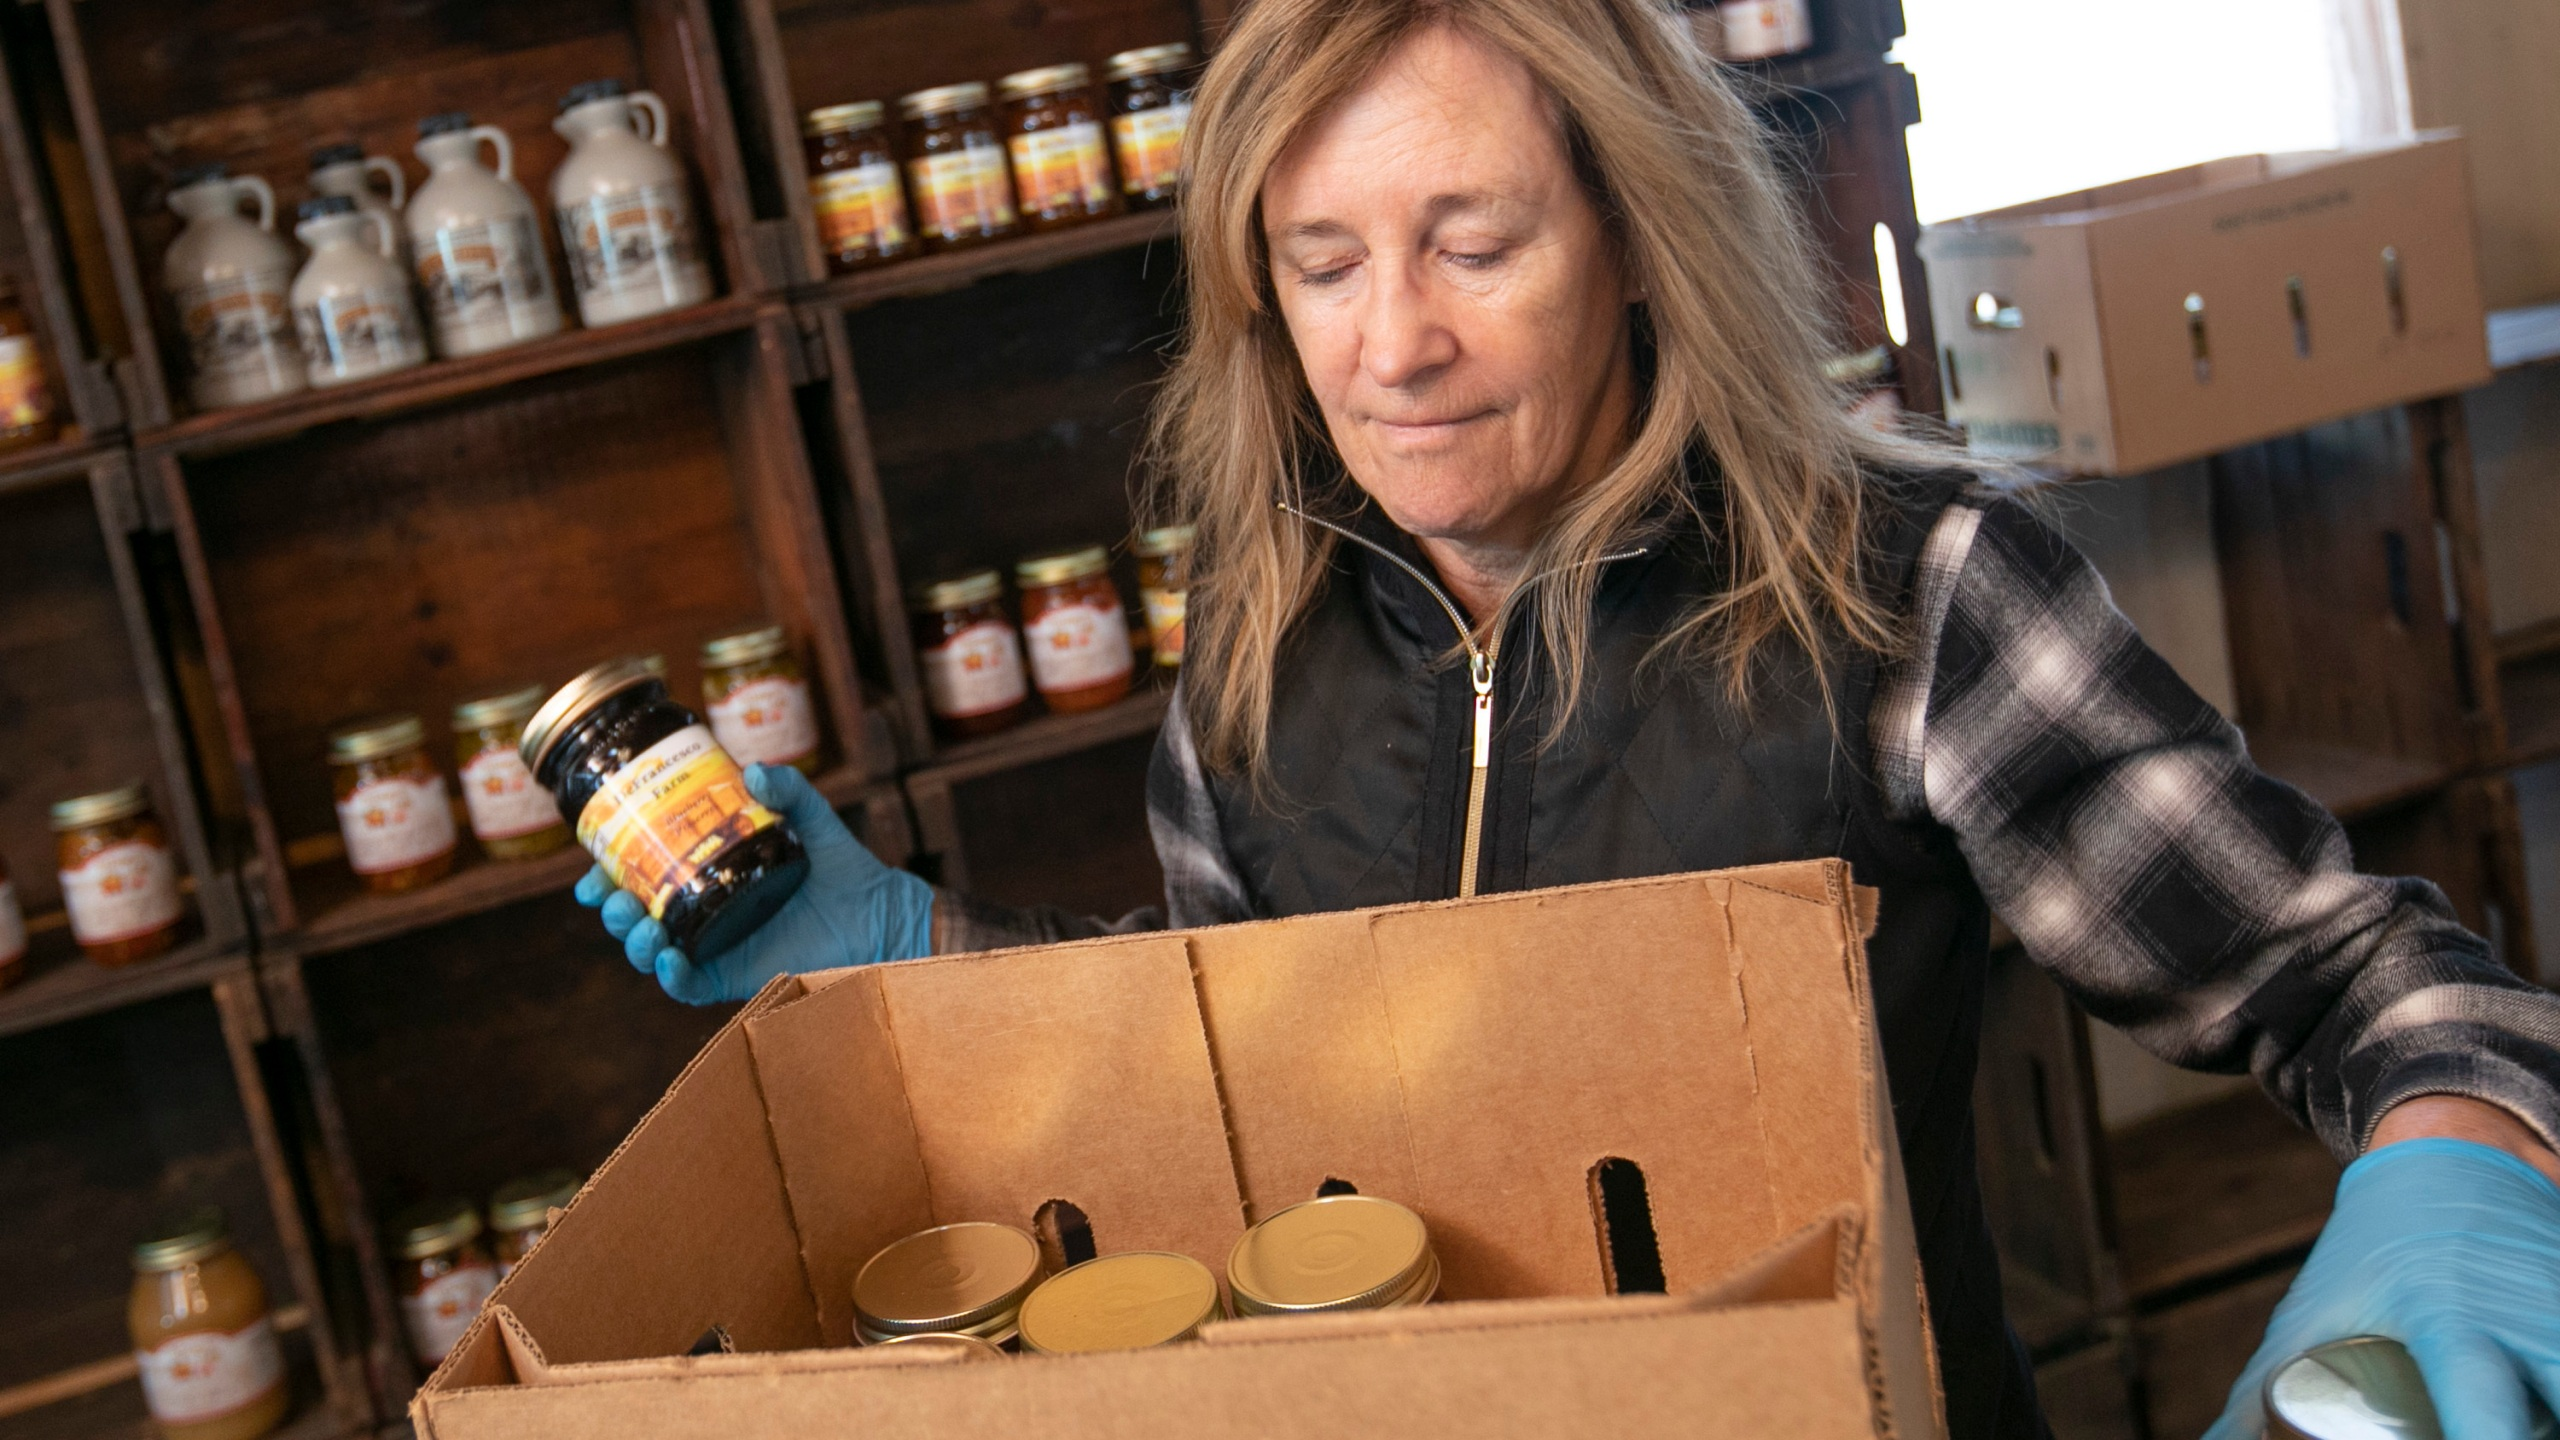 "Linda DeFrancesco stocks shelves with her farm's own salsa, spreads, veggies and salsa at DeFrancesco Farm Stand in Northford, Conn., Thursday, March 26, 2020. Businesses across the state are worried about the impact of the coronavirus, even the ones considered ""essential"" like farmers' markets and garden centers. The farm stand opens Saturday at 10 a.m. (Dave Zajac/Record-Journal via AP)"